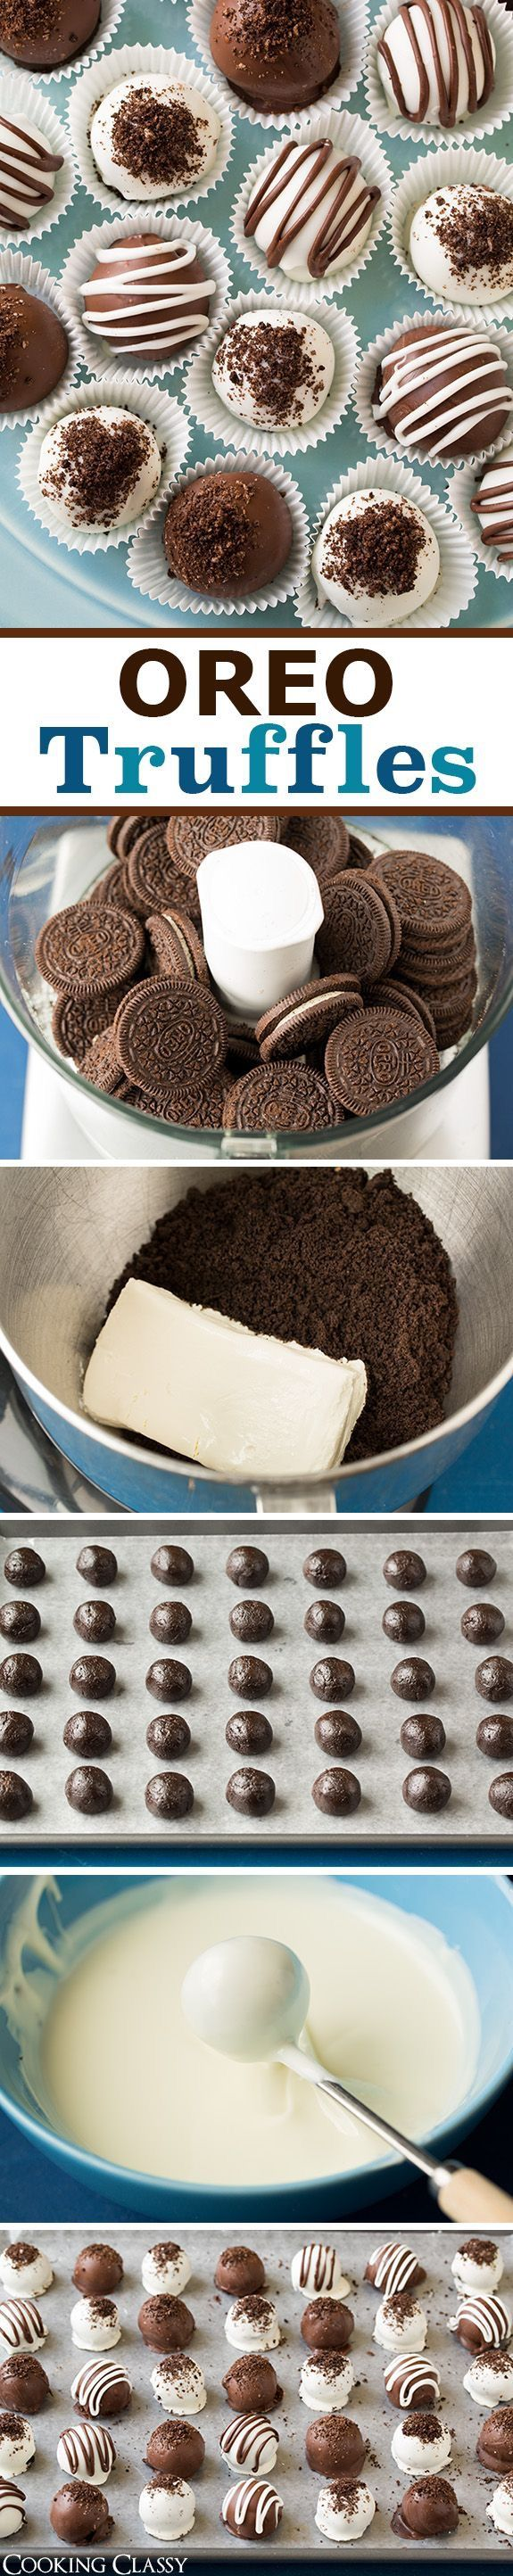 Oreo Truffles by CookingClassy